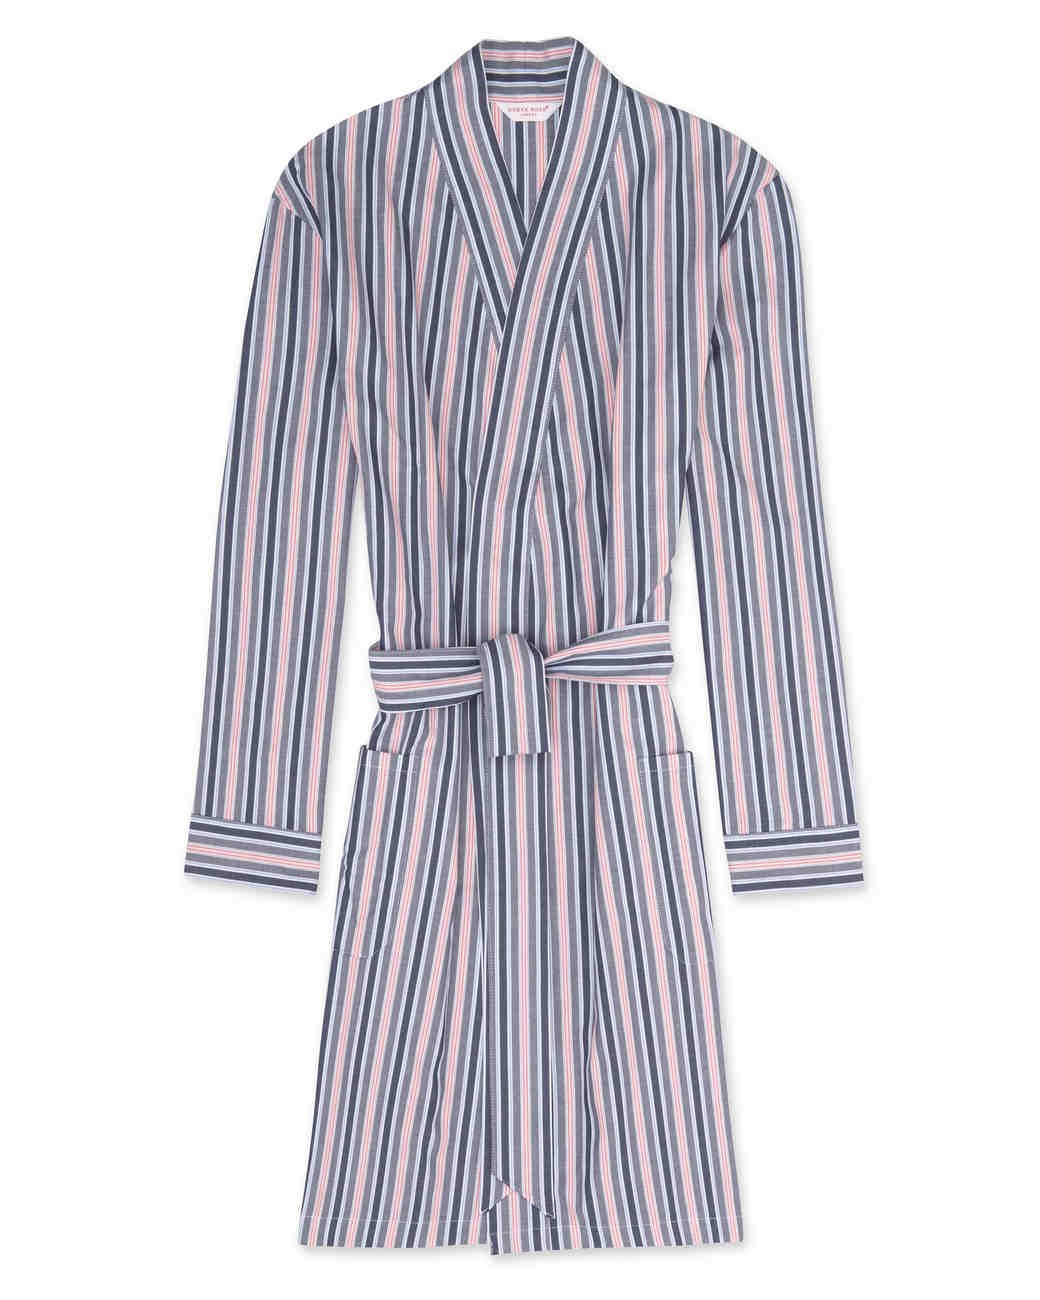 fathers-gift-guide-accessories-robe-0515.jpg